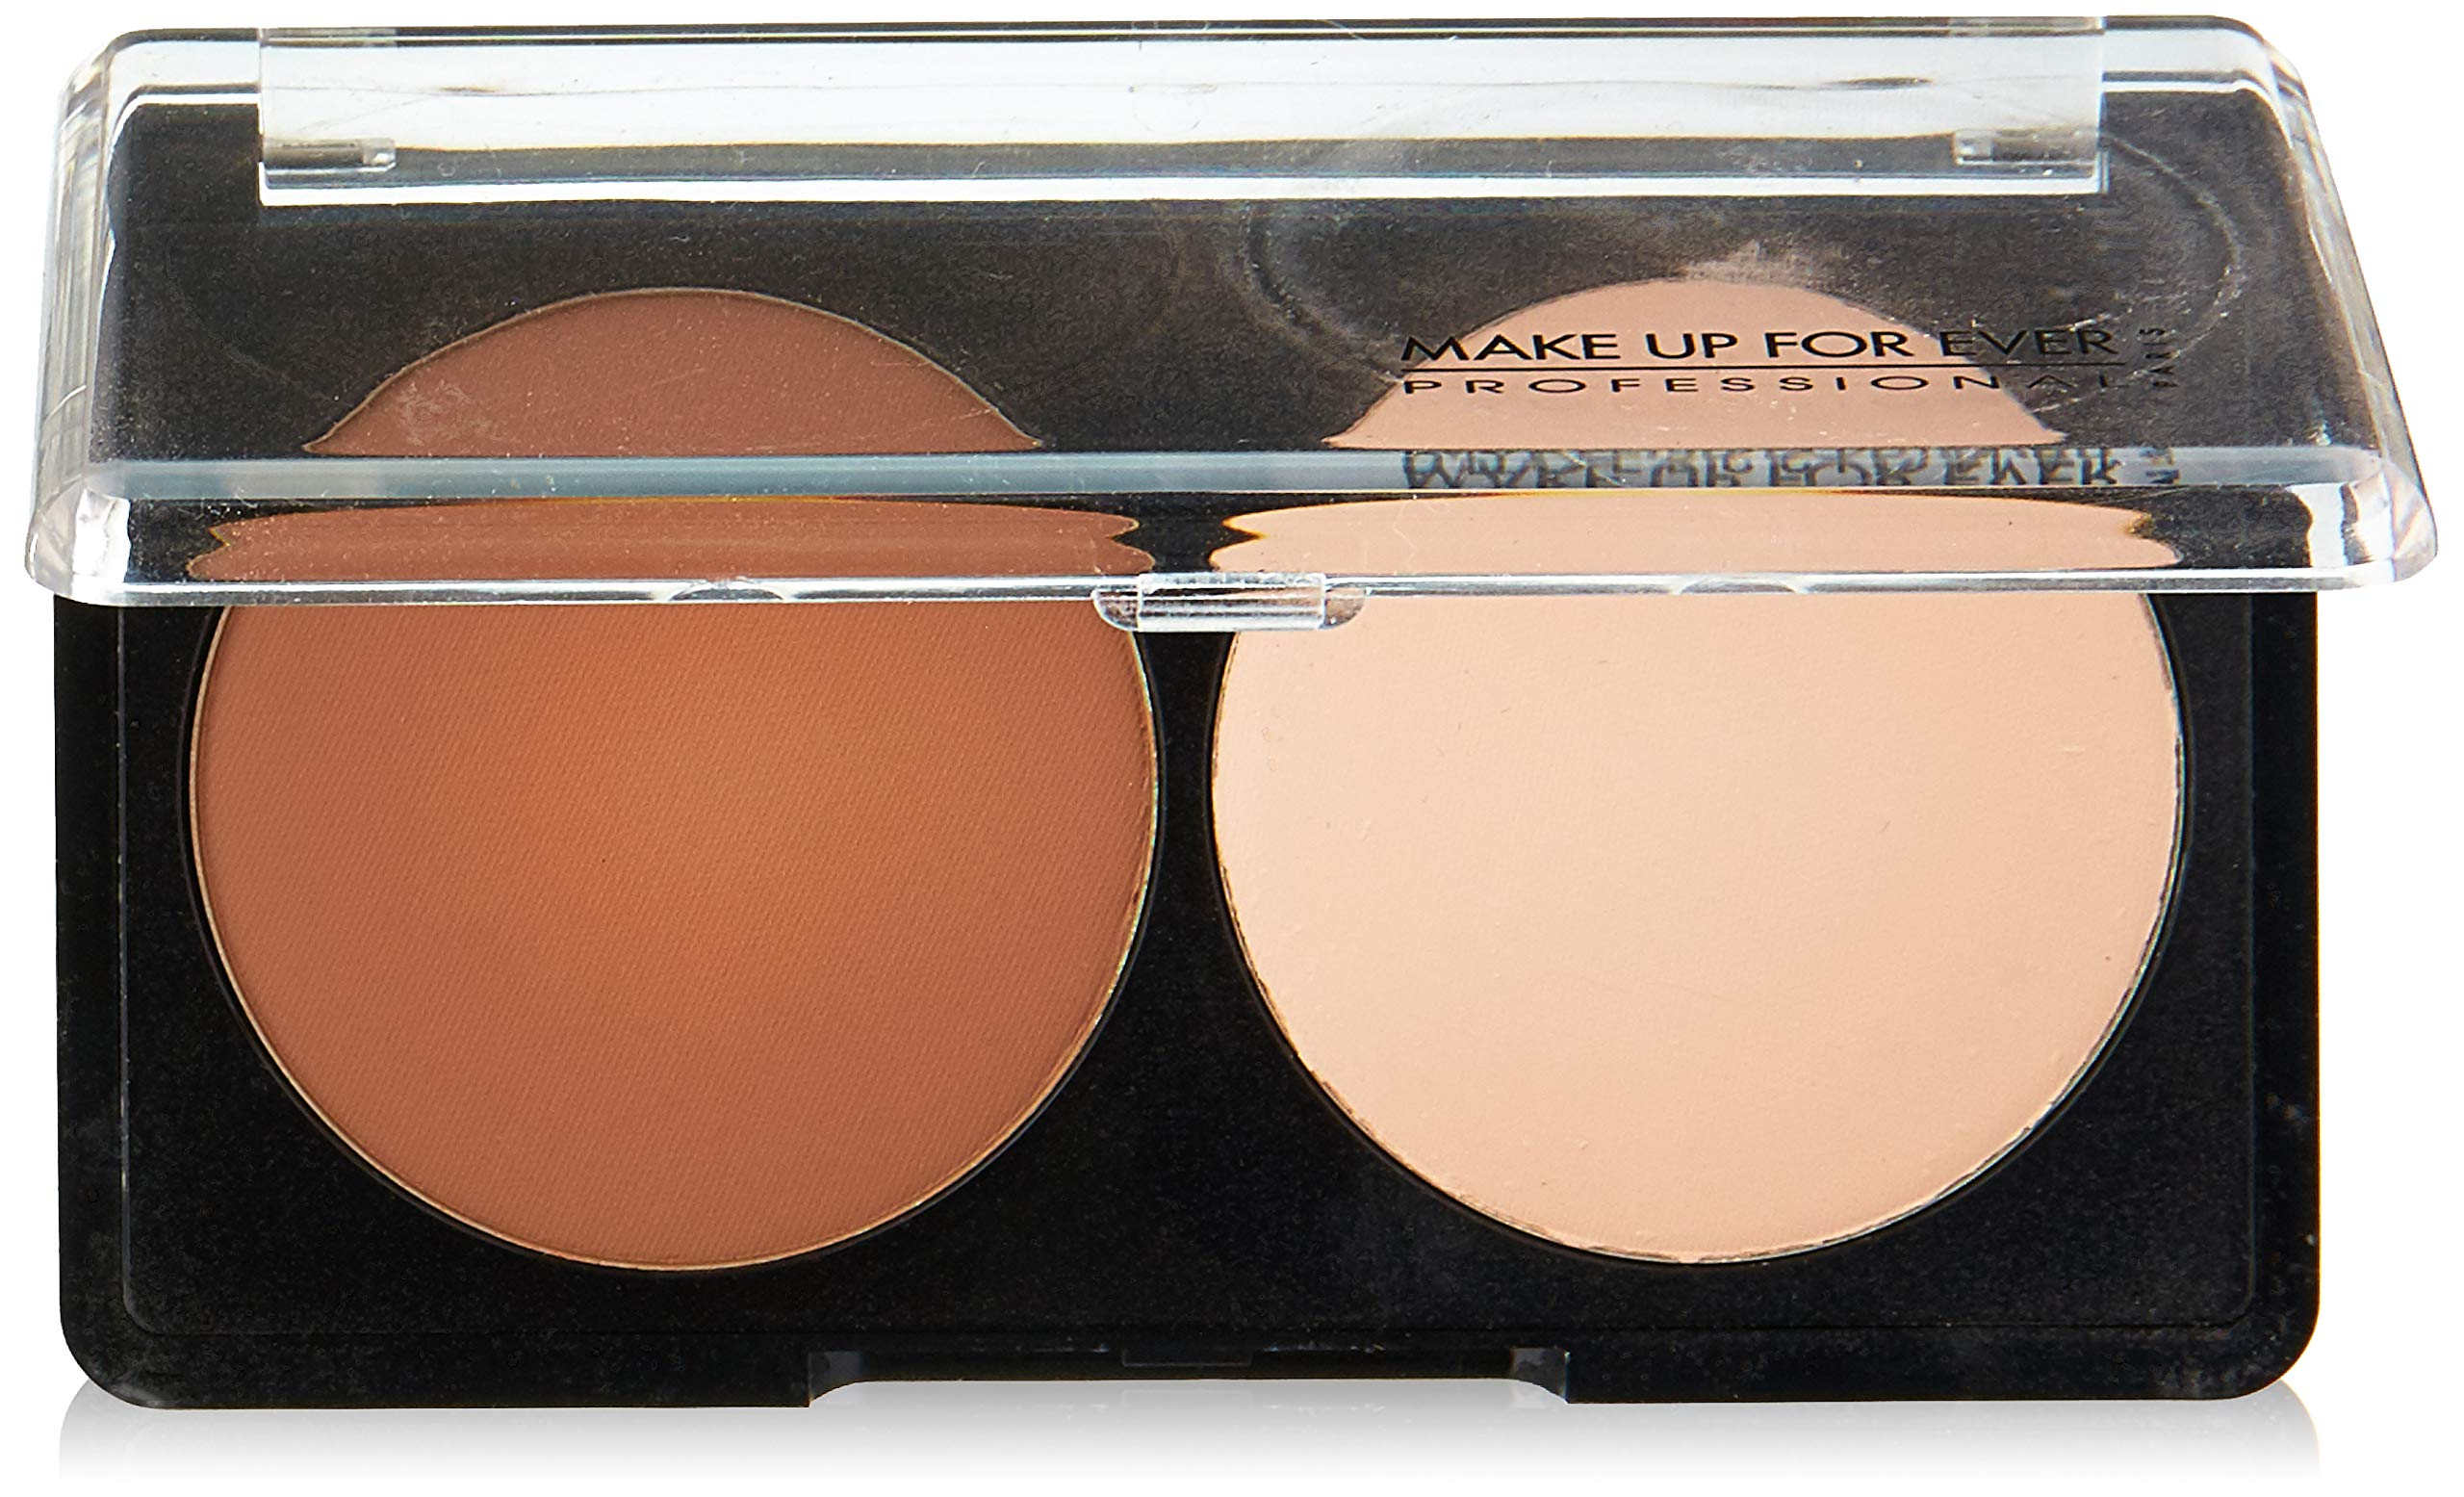 Make Up For Ever Sculpting Kit, No. 2 Neutral Light, 0.17 Ounce by Make Up For Ever